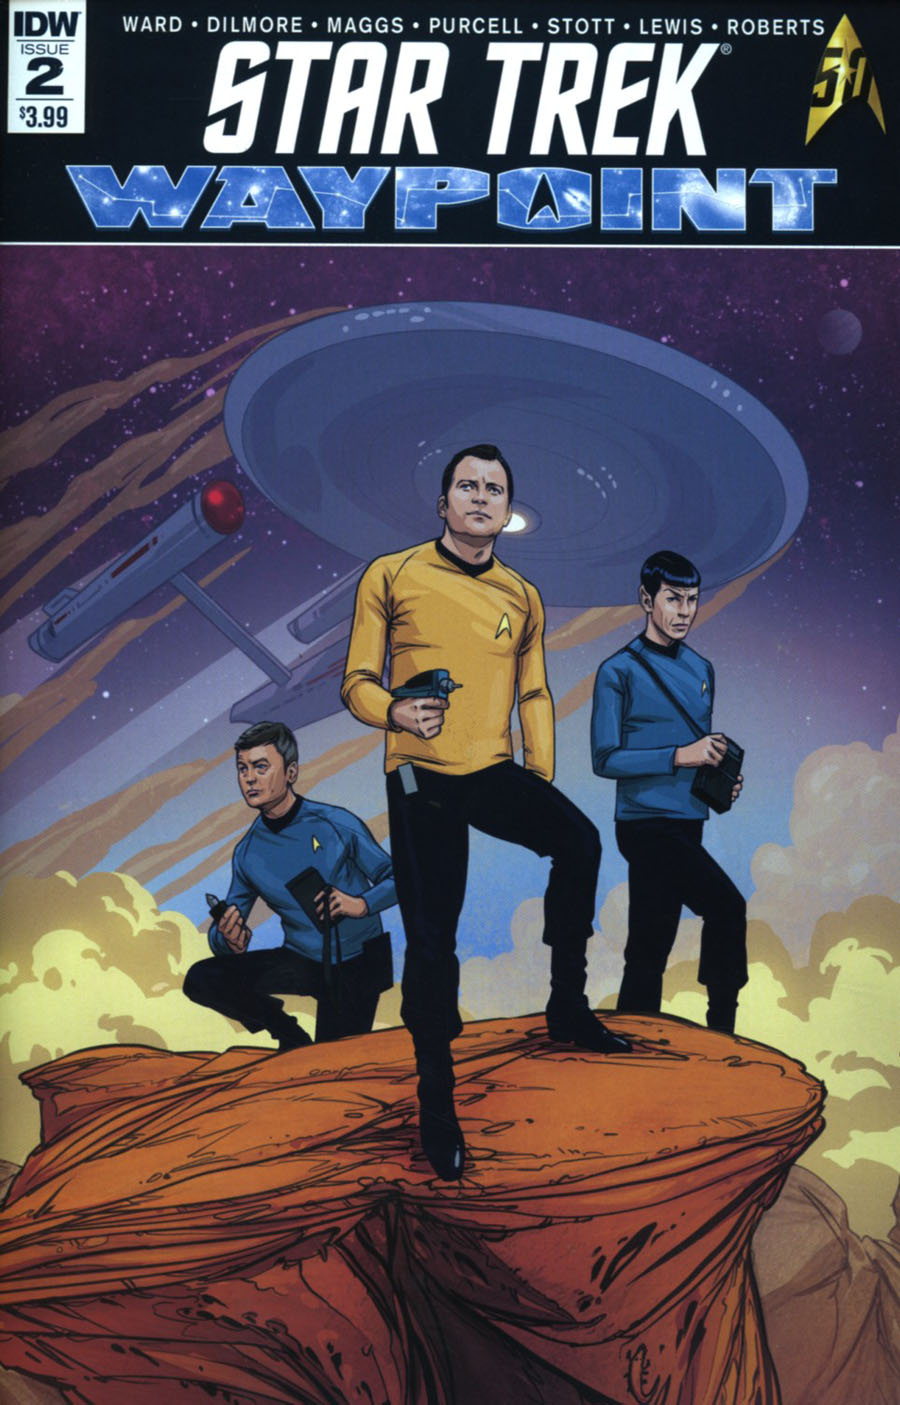 Star Trek Waypoint #2 Cover A Regular David Malan Cover